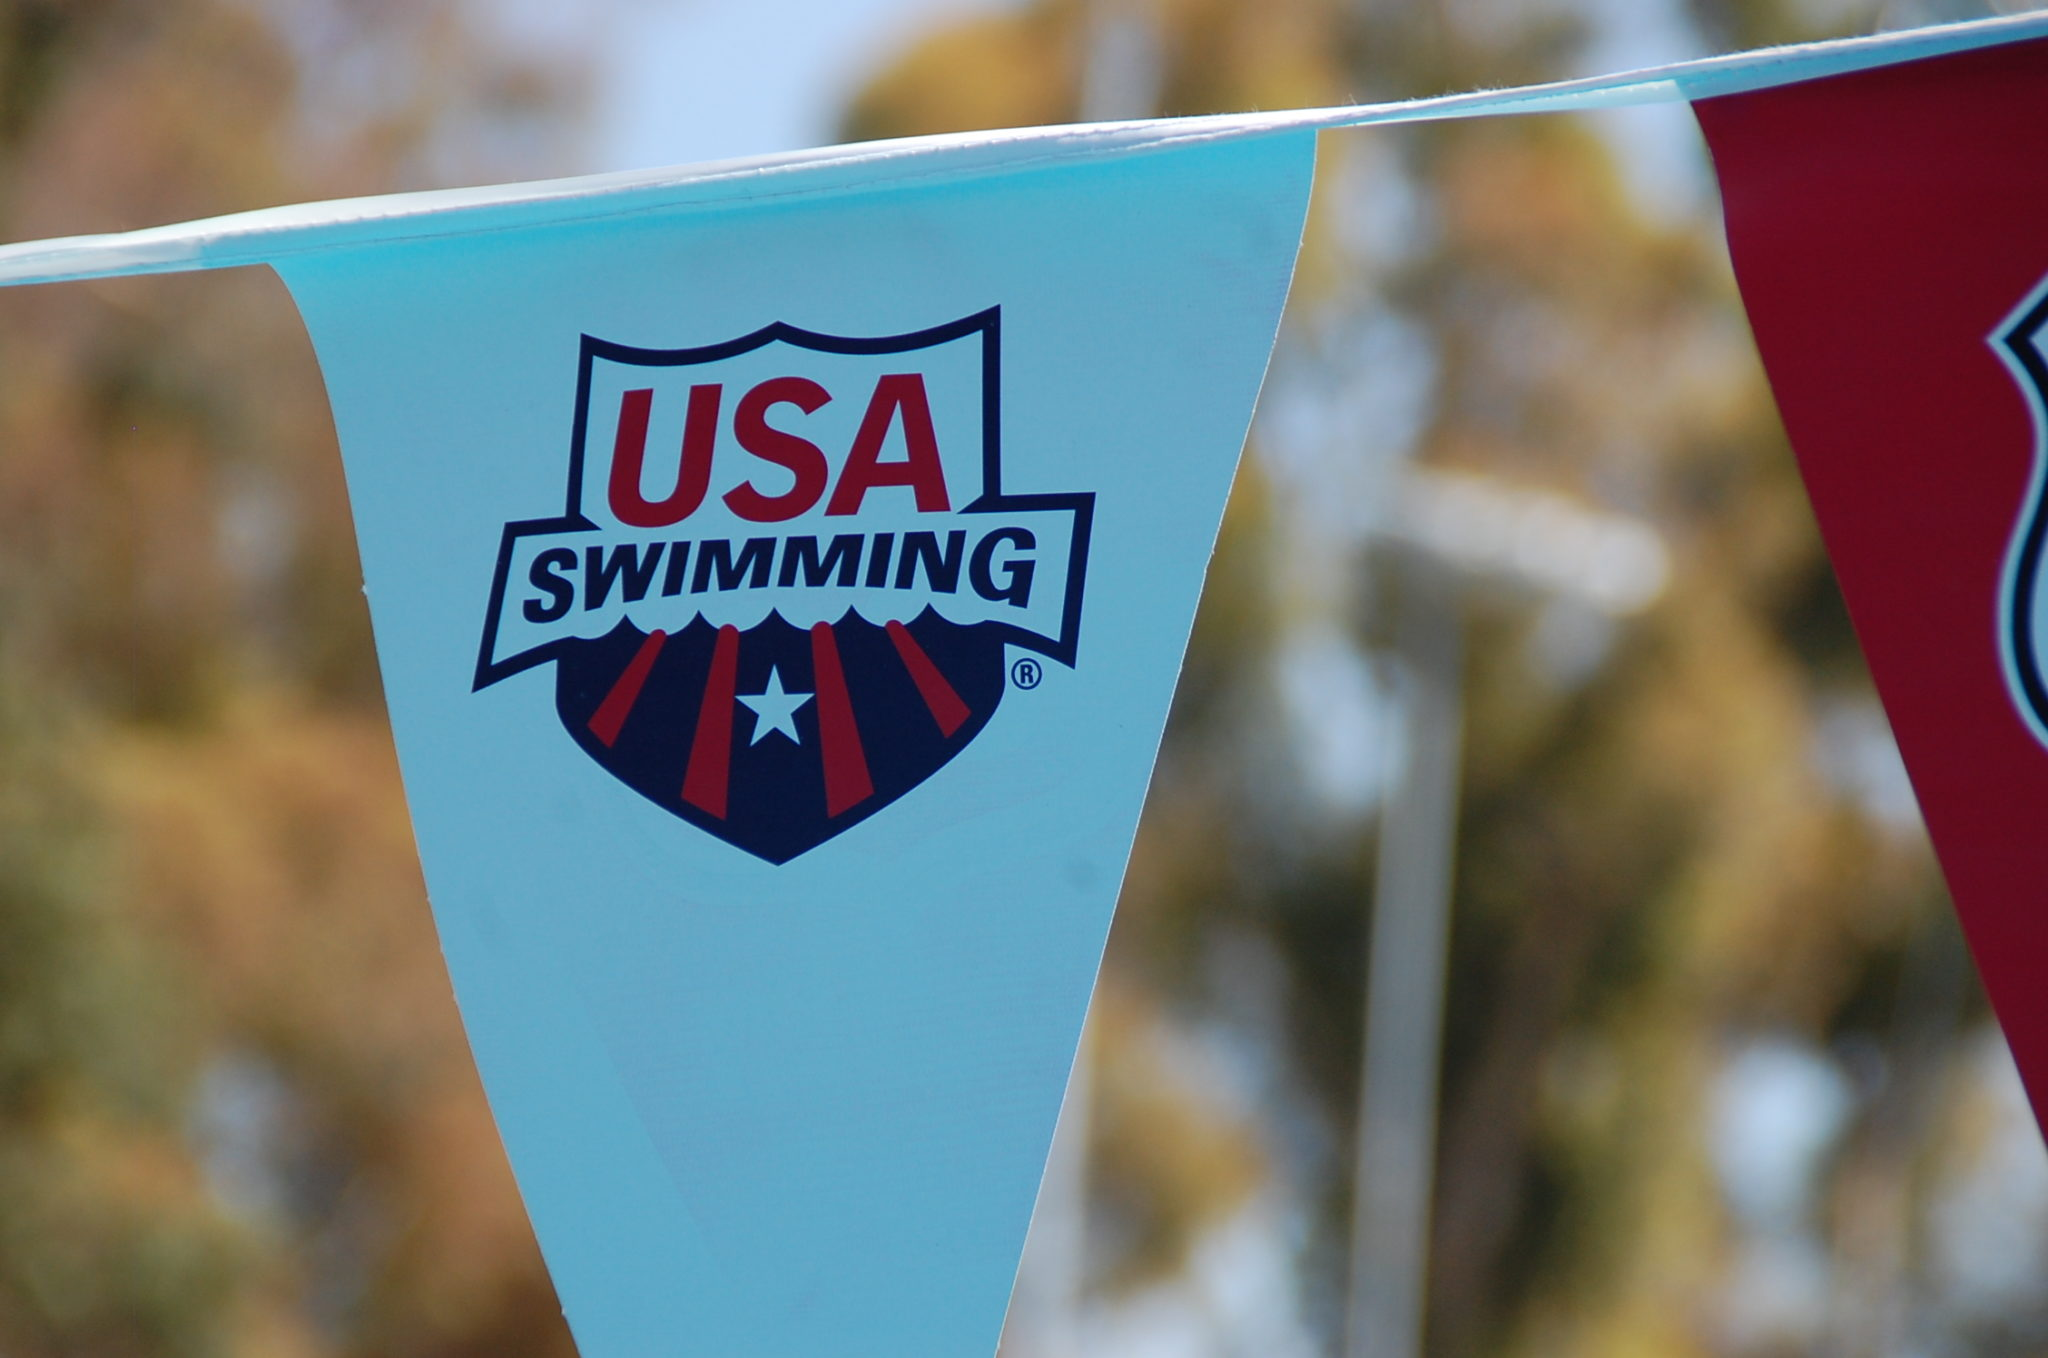 USA Swimming Announces 9 Nominees for 4 Board of Director Positions